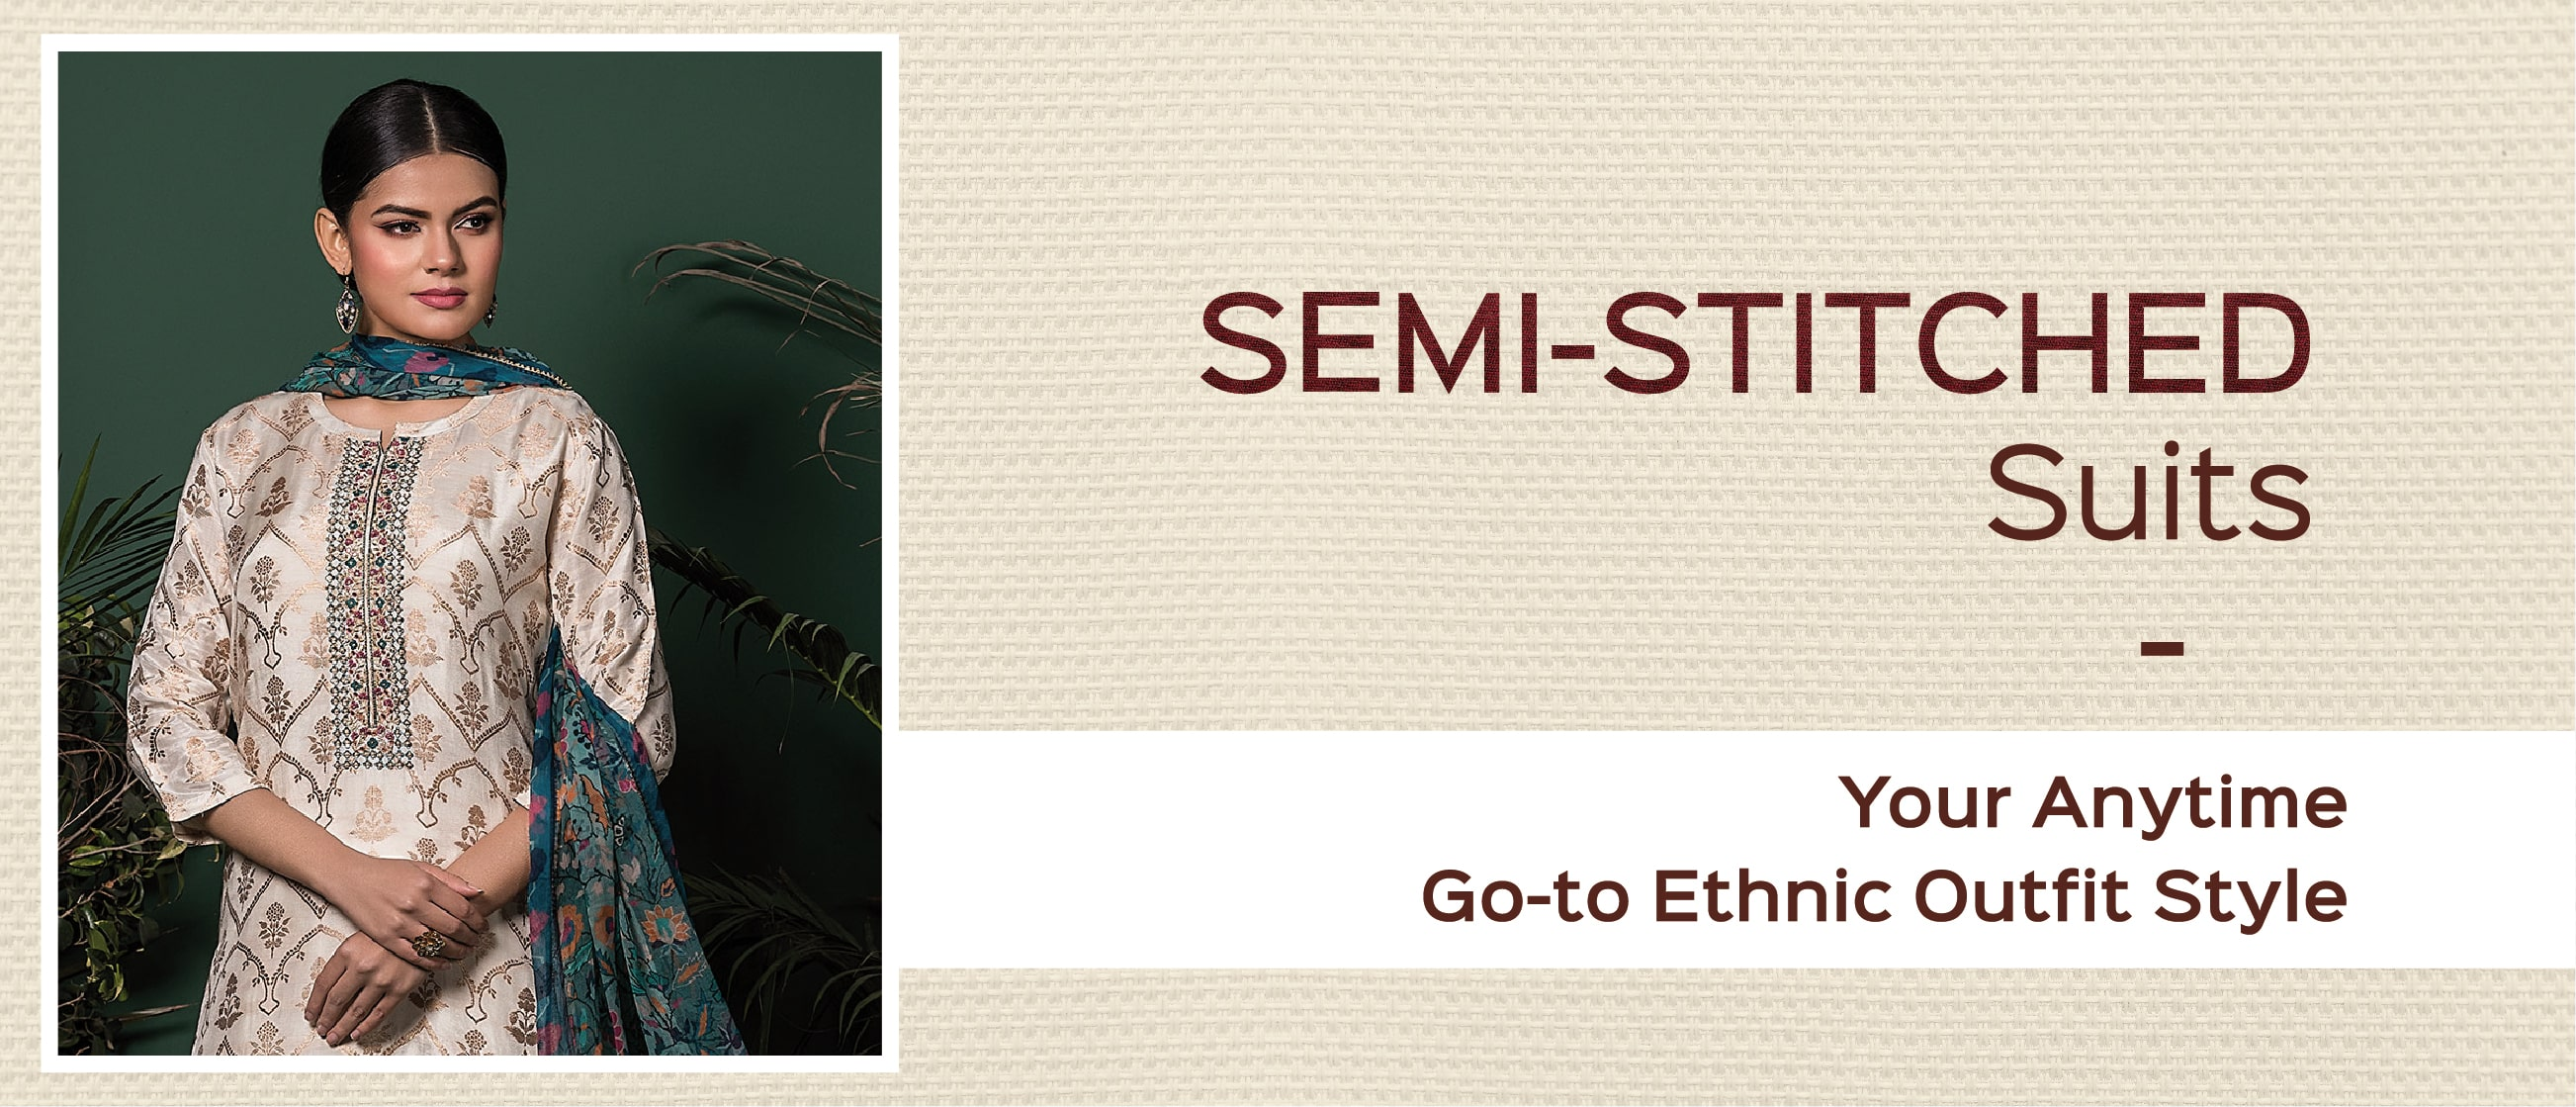 Semi-stitched Suits: Your Anytime Go-to Ethnic Outfit Style